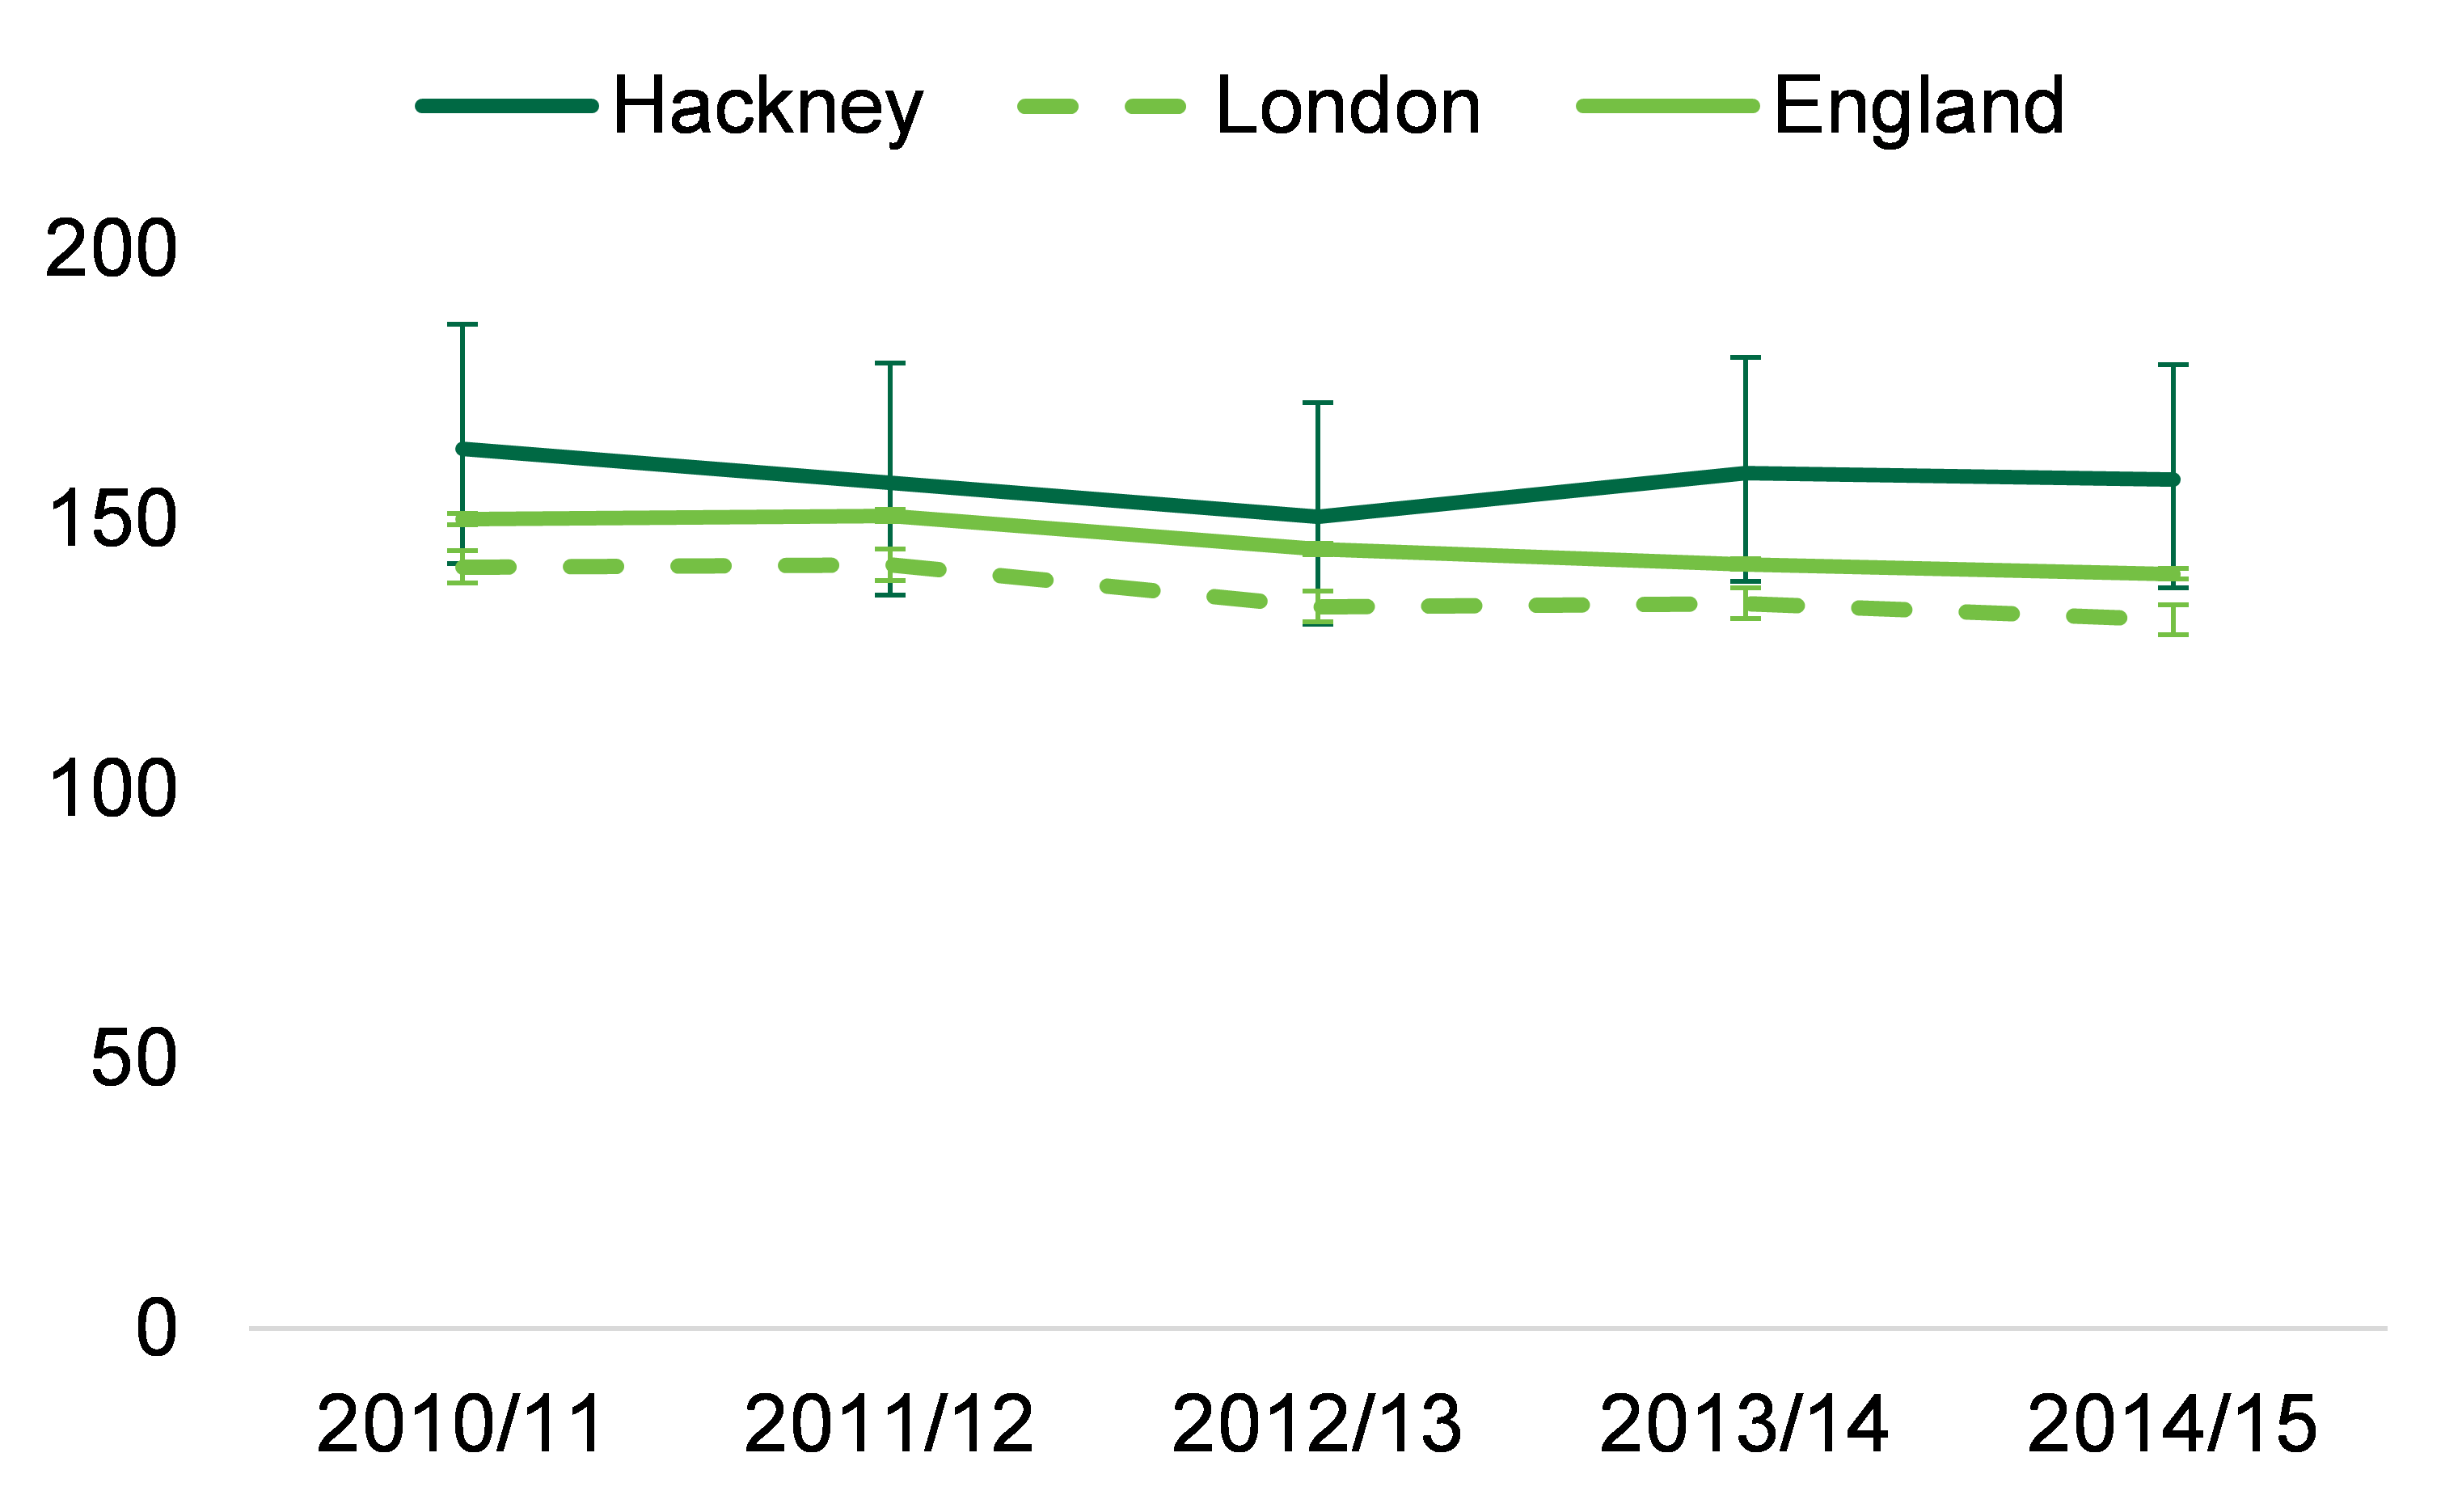 Between 2010/11 and 2014/15 the rate for Hackney is consistently higher than the London region average